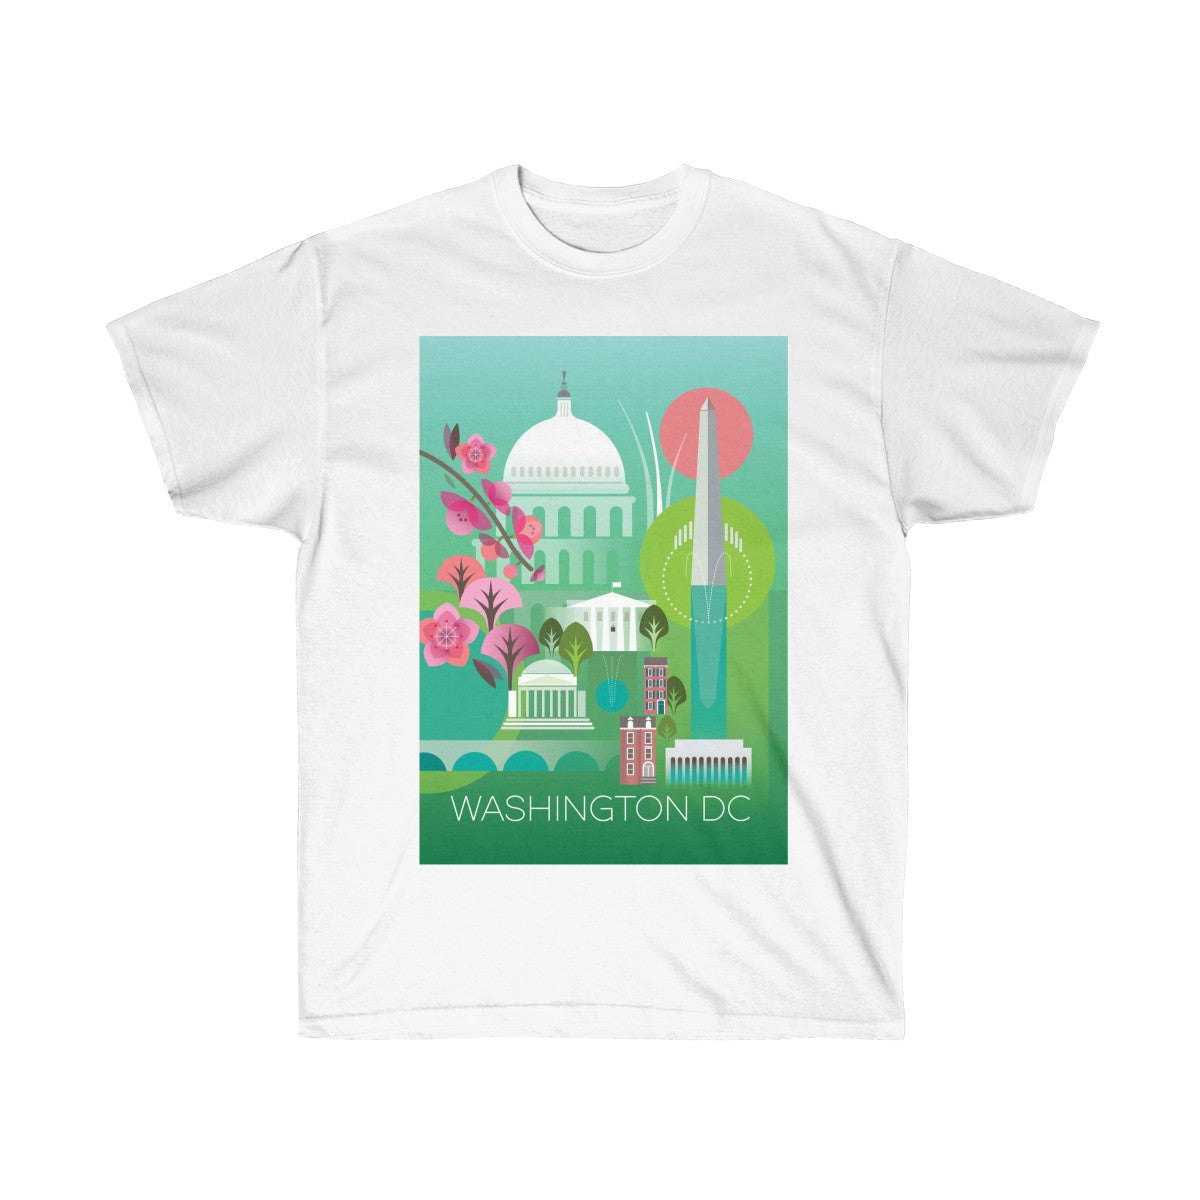 WASHINGTON, DC UNISEX ULTRA COTTON TEE